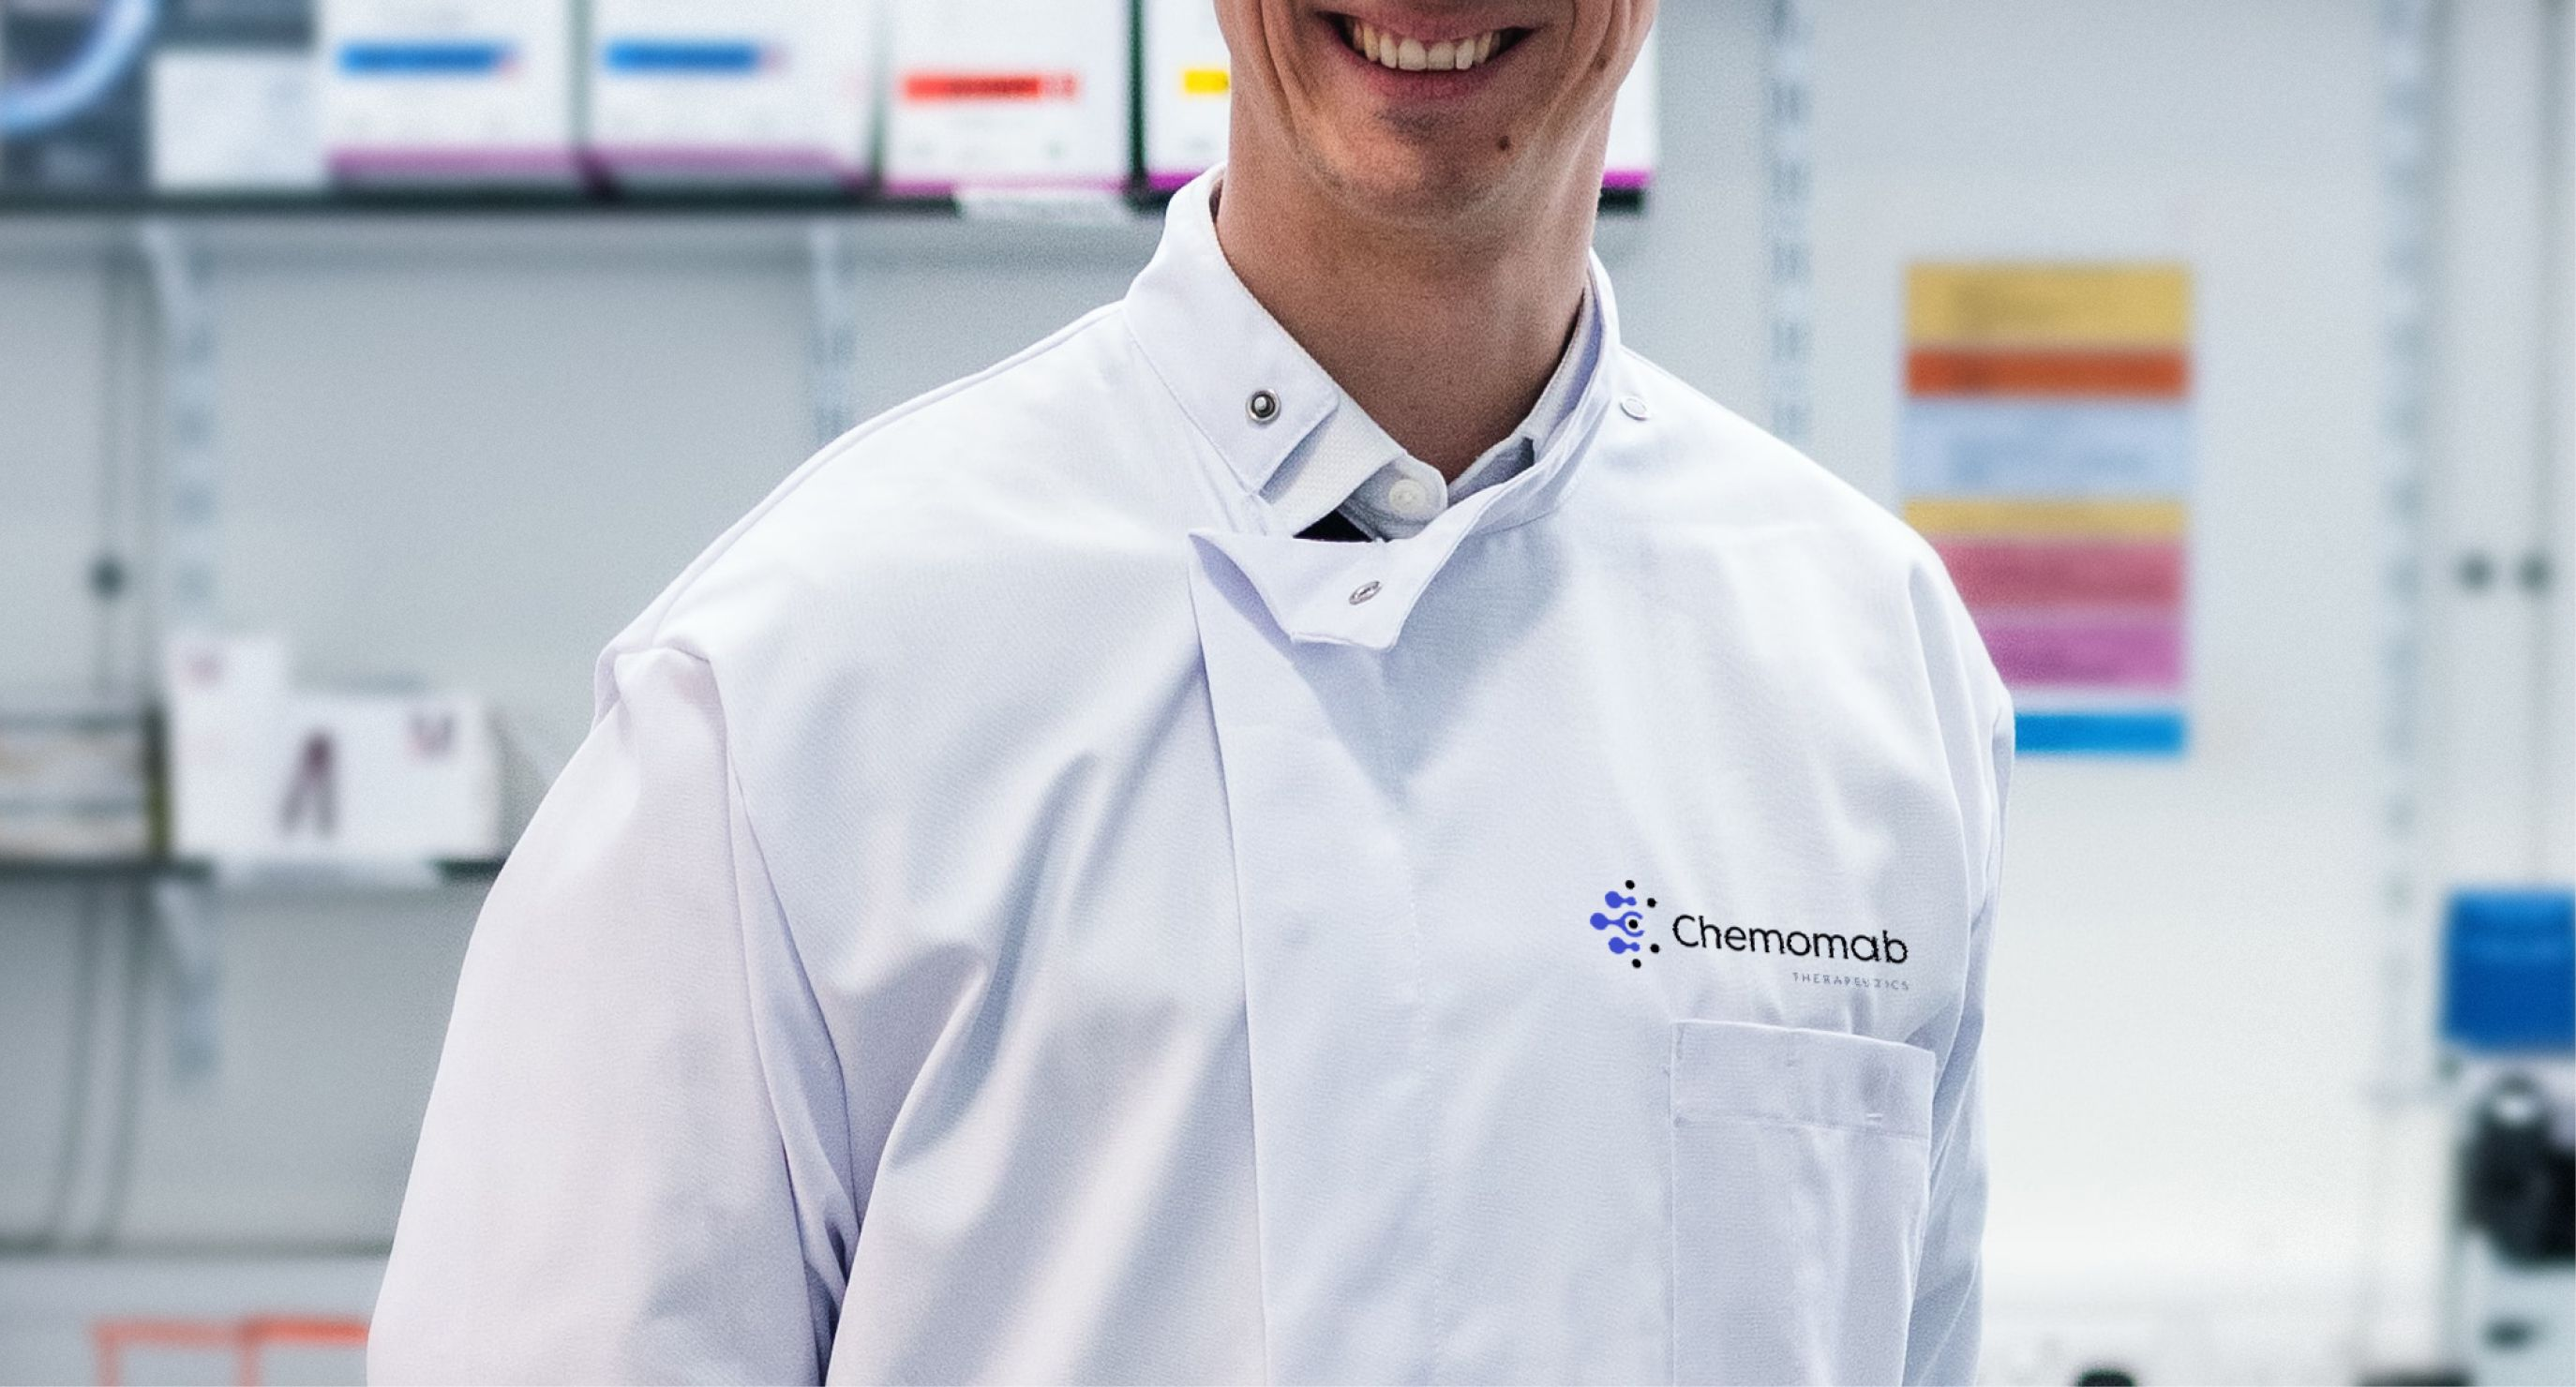 Scientist wearing branded Chemomab lab coat